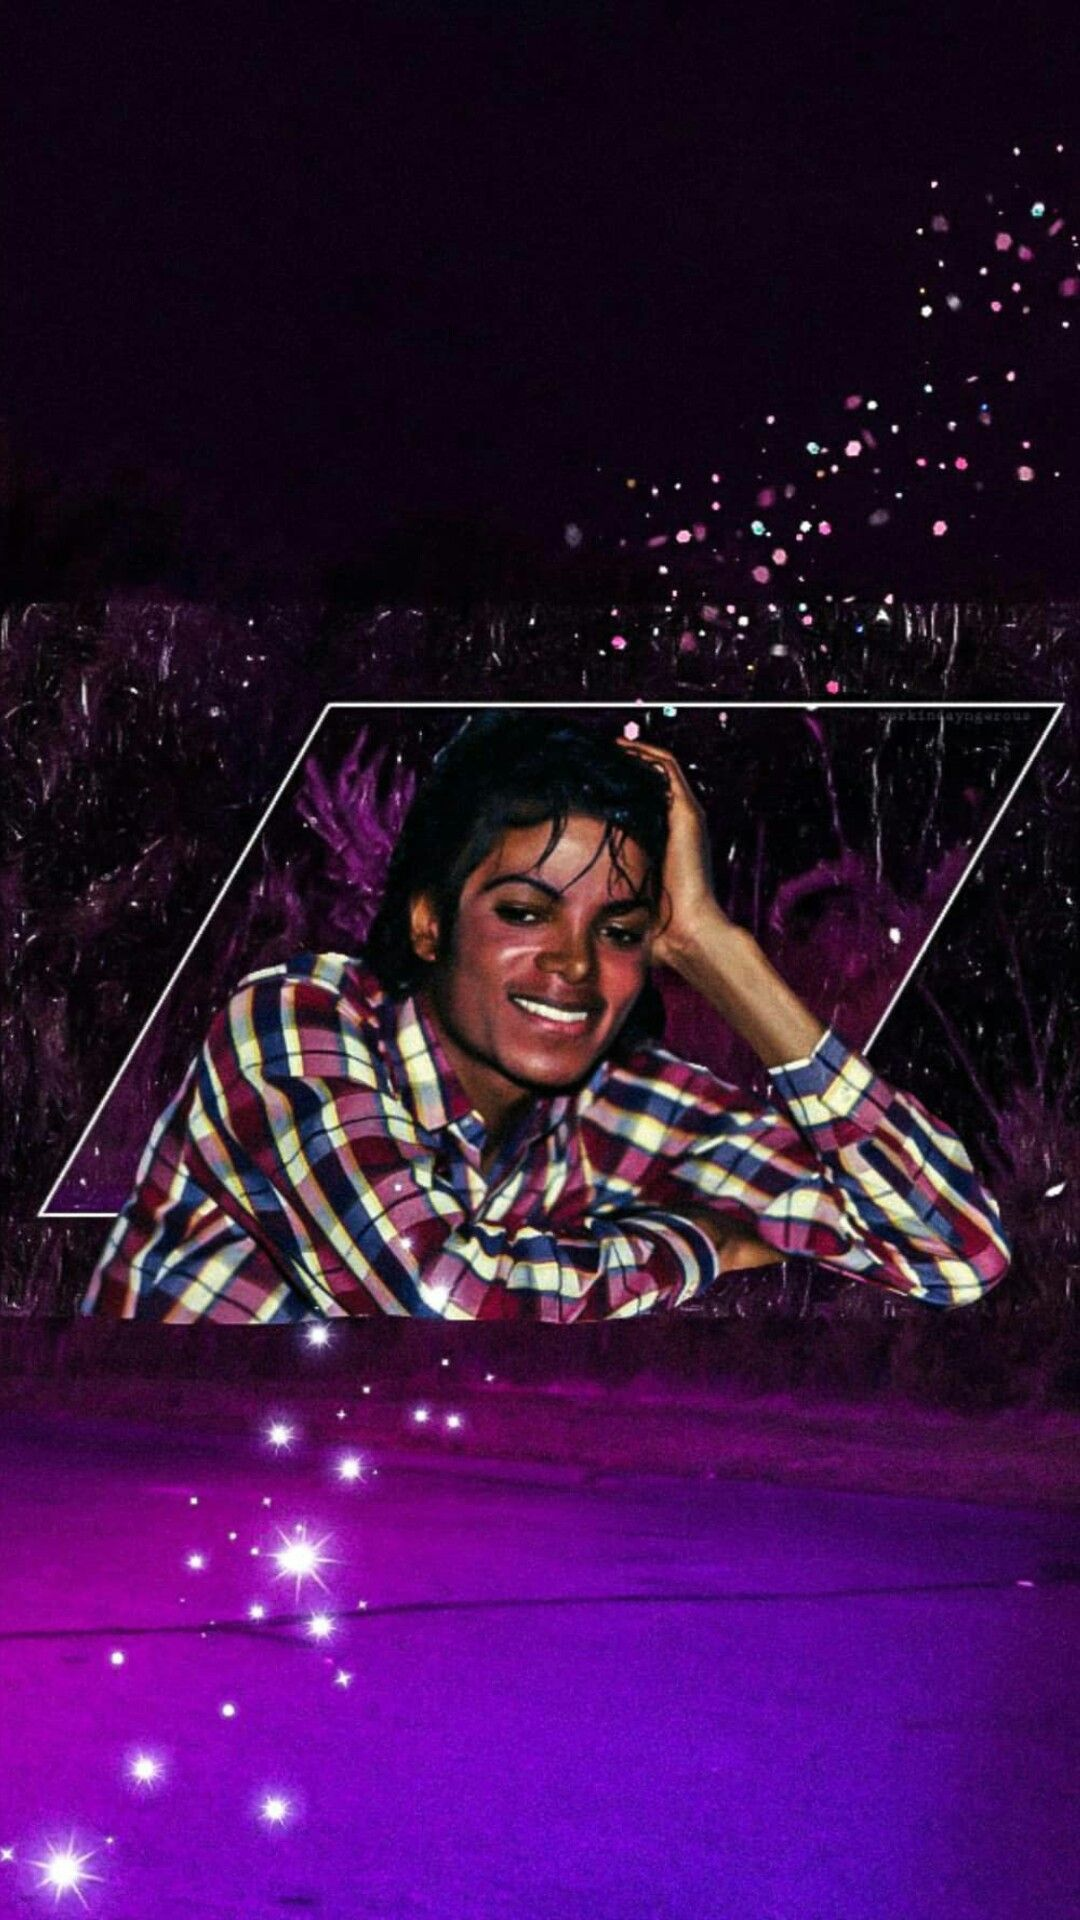 Pin On Mj Forever